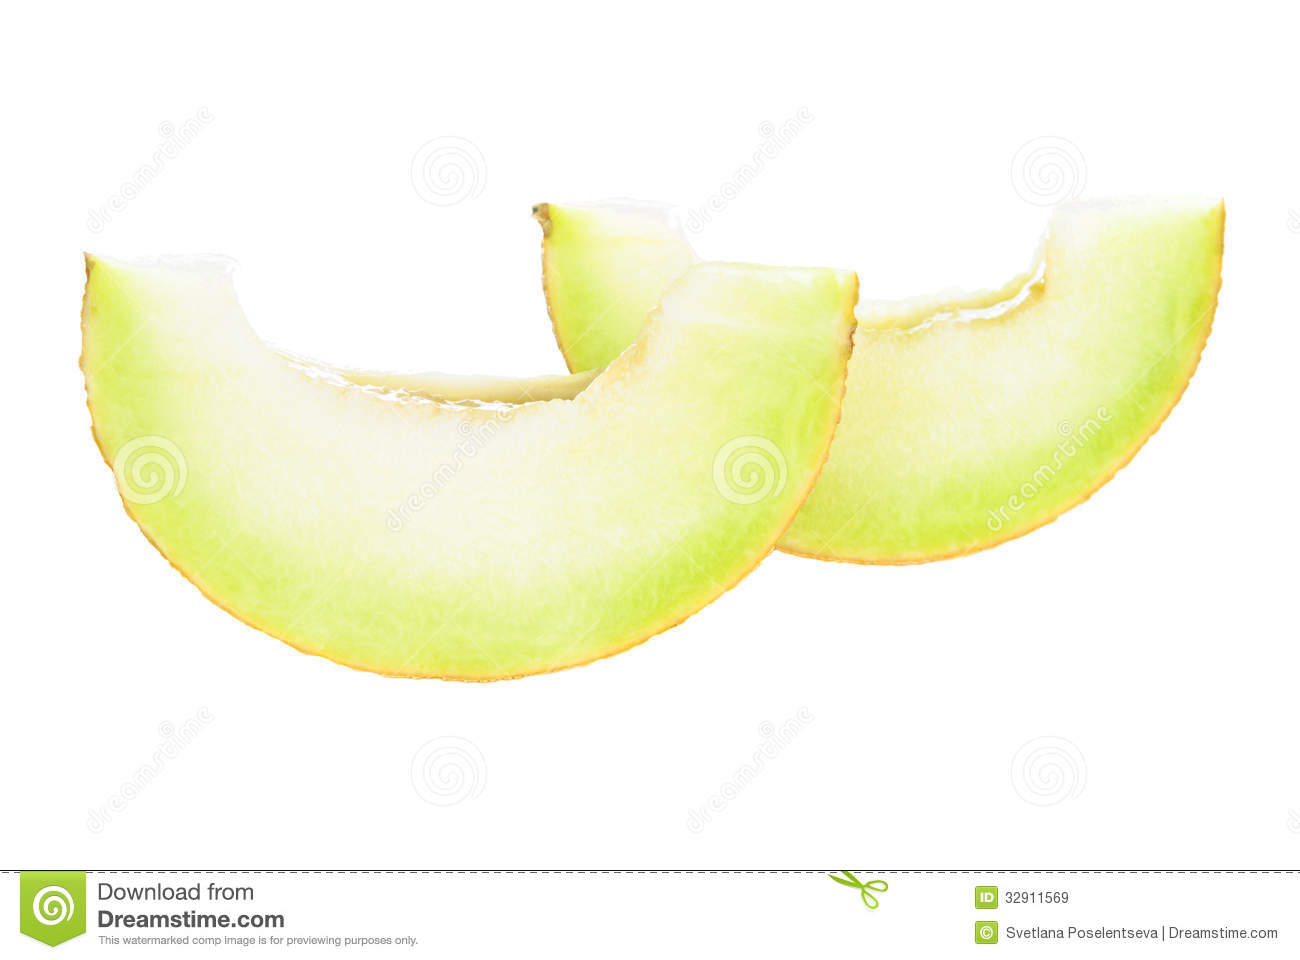 Honey Dew Melon clipart #1, Download drawings